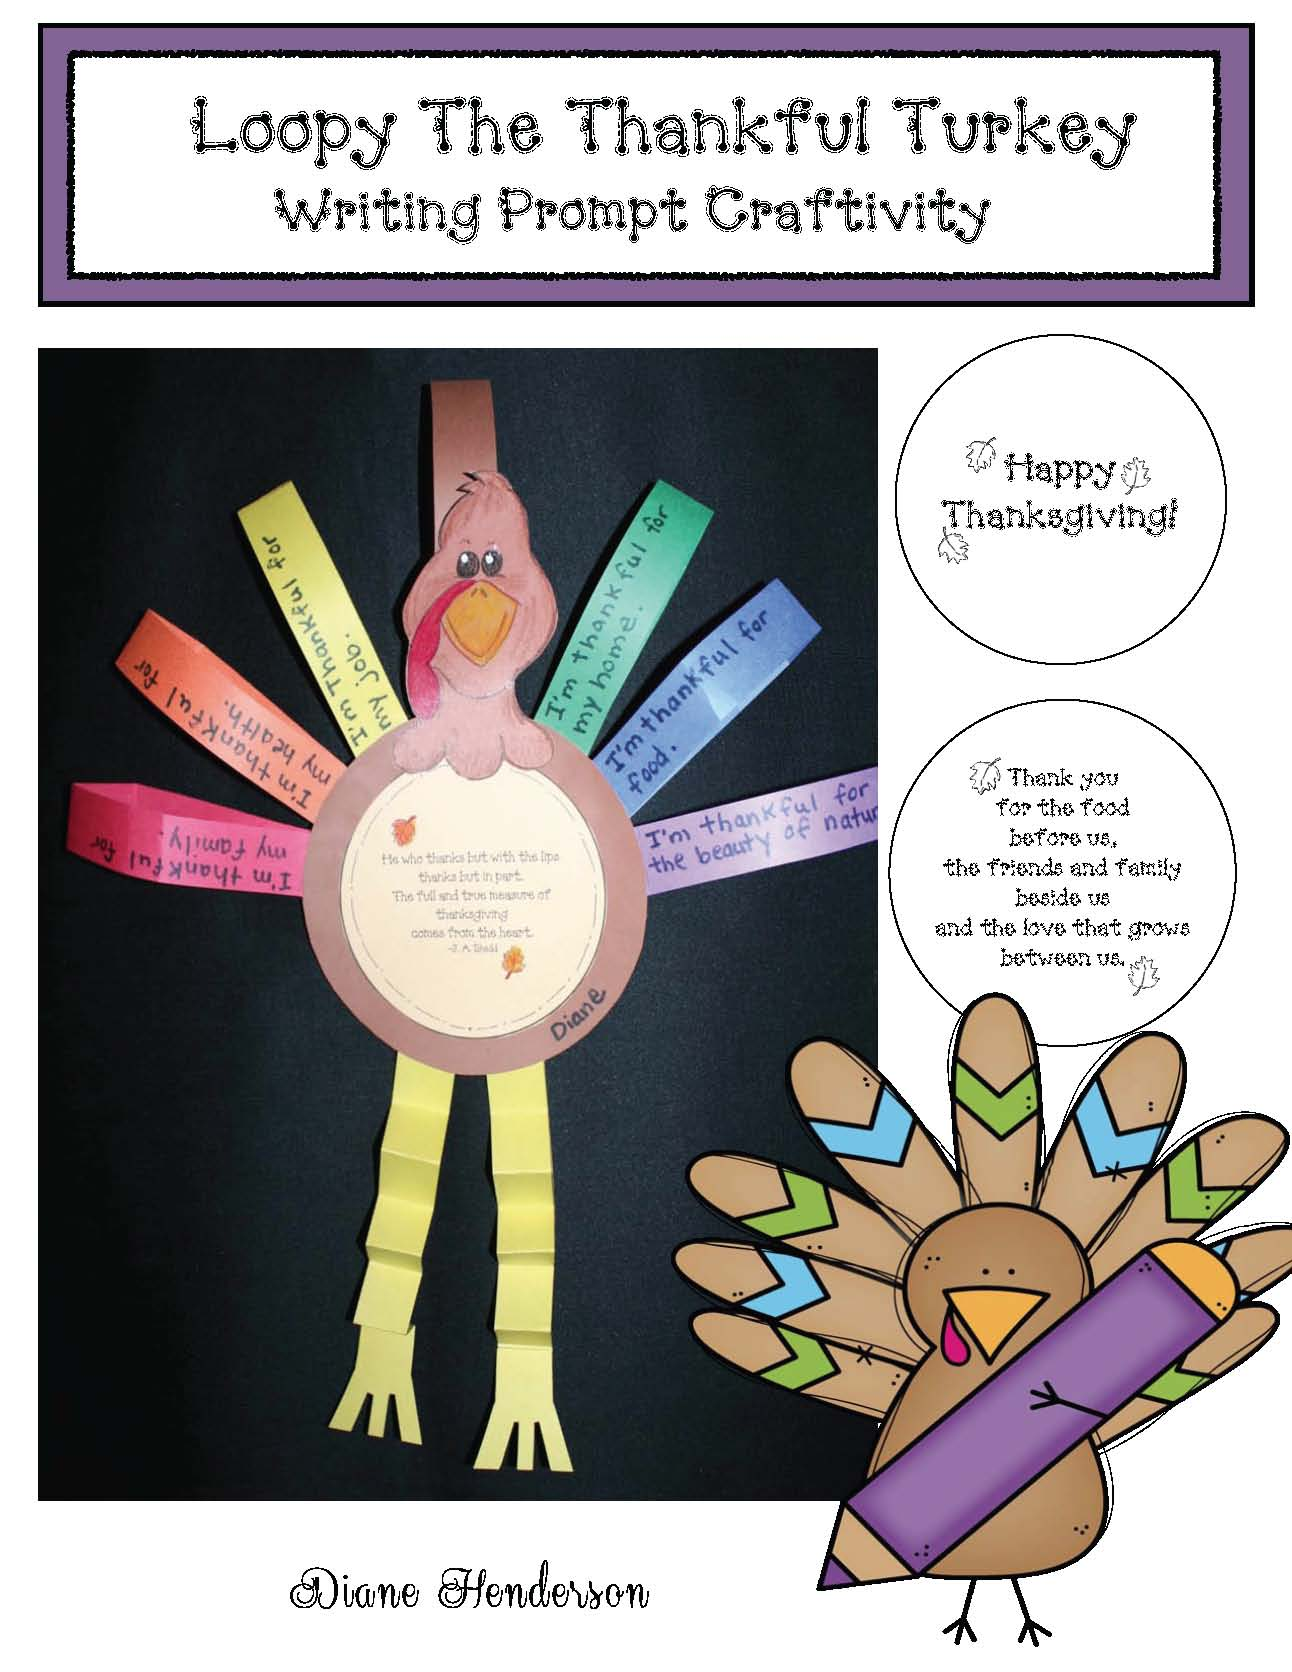 thanksgiving crafts, thanksgiving activities, turkey crafts, turkey activities, writing prompts for november, november bulletin boards, i'm thankful writing prompt ideas